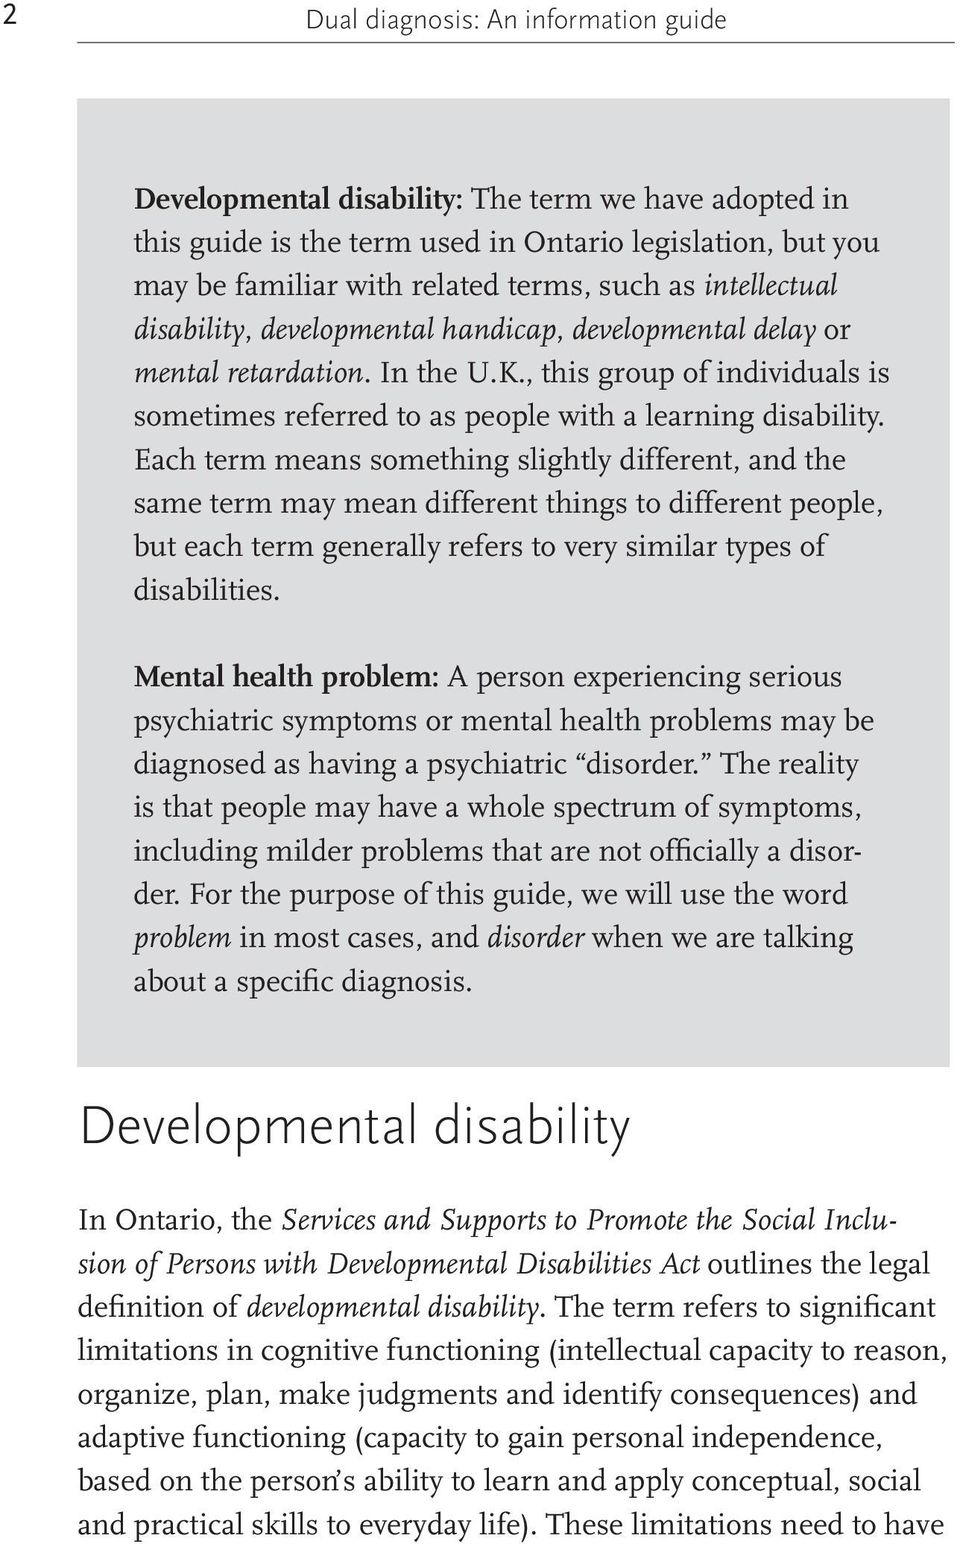 Each term means something slightly different, and the same term may mean different things to different people, but each term generally refers to very similar types of disabilities.